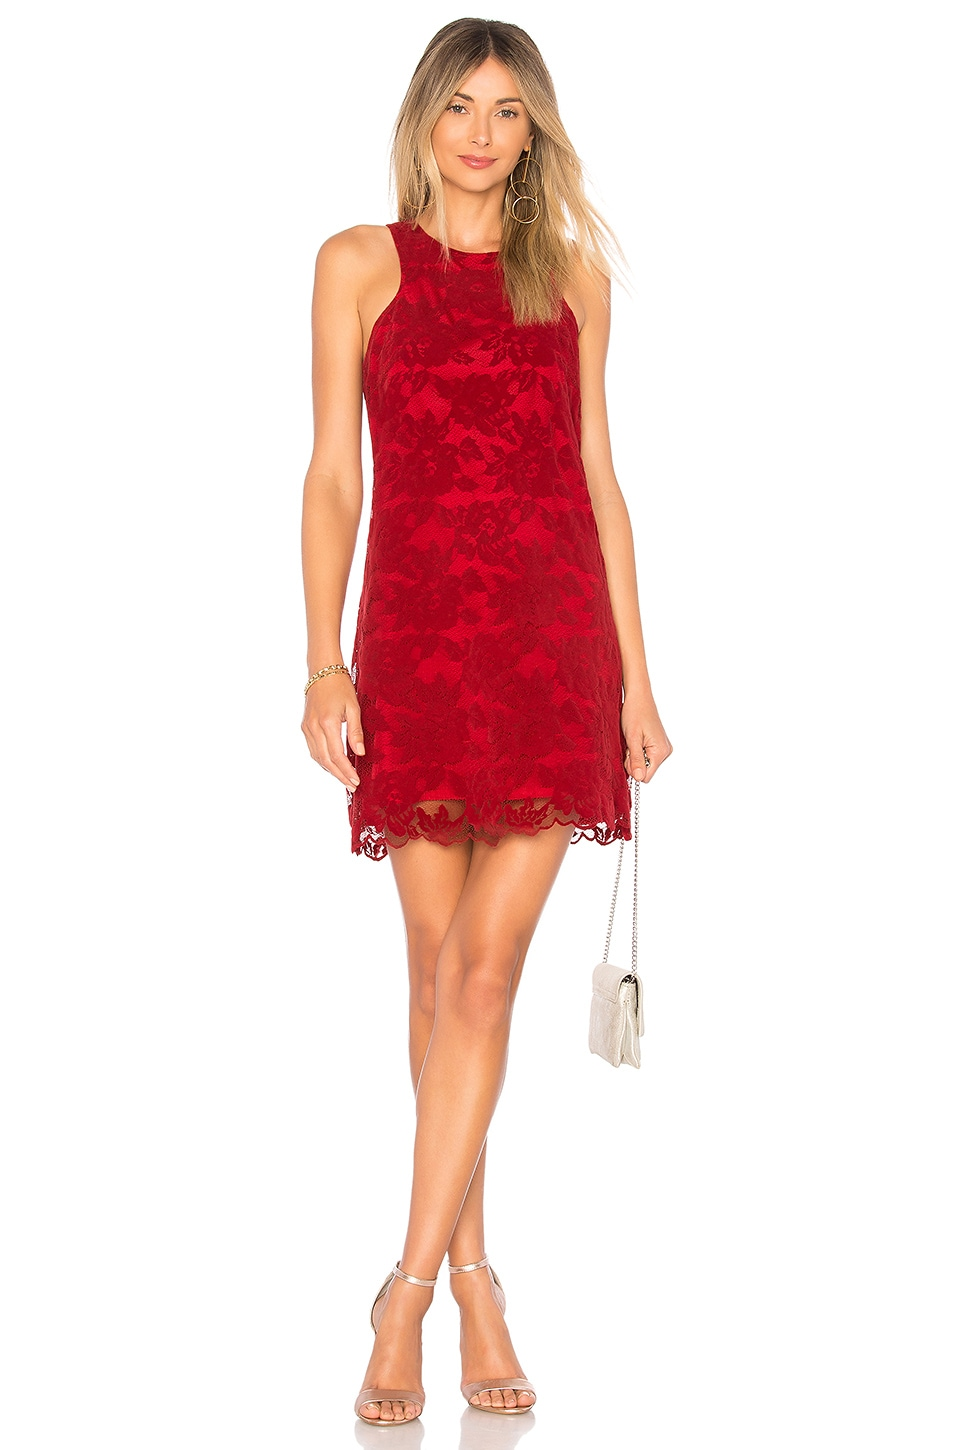 Lovers + Friends Caspian Dress in Bordeaux